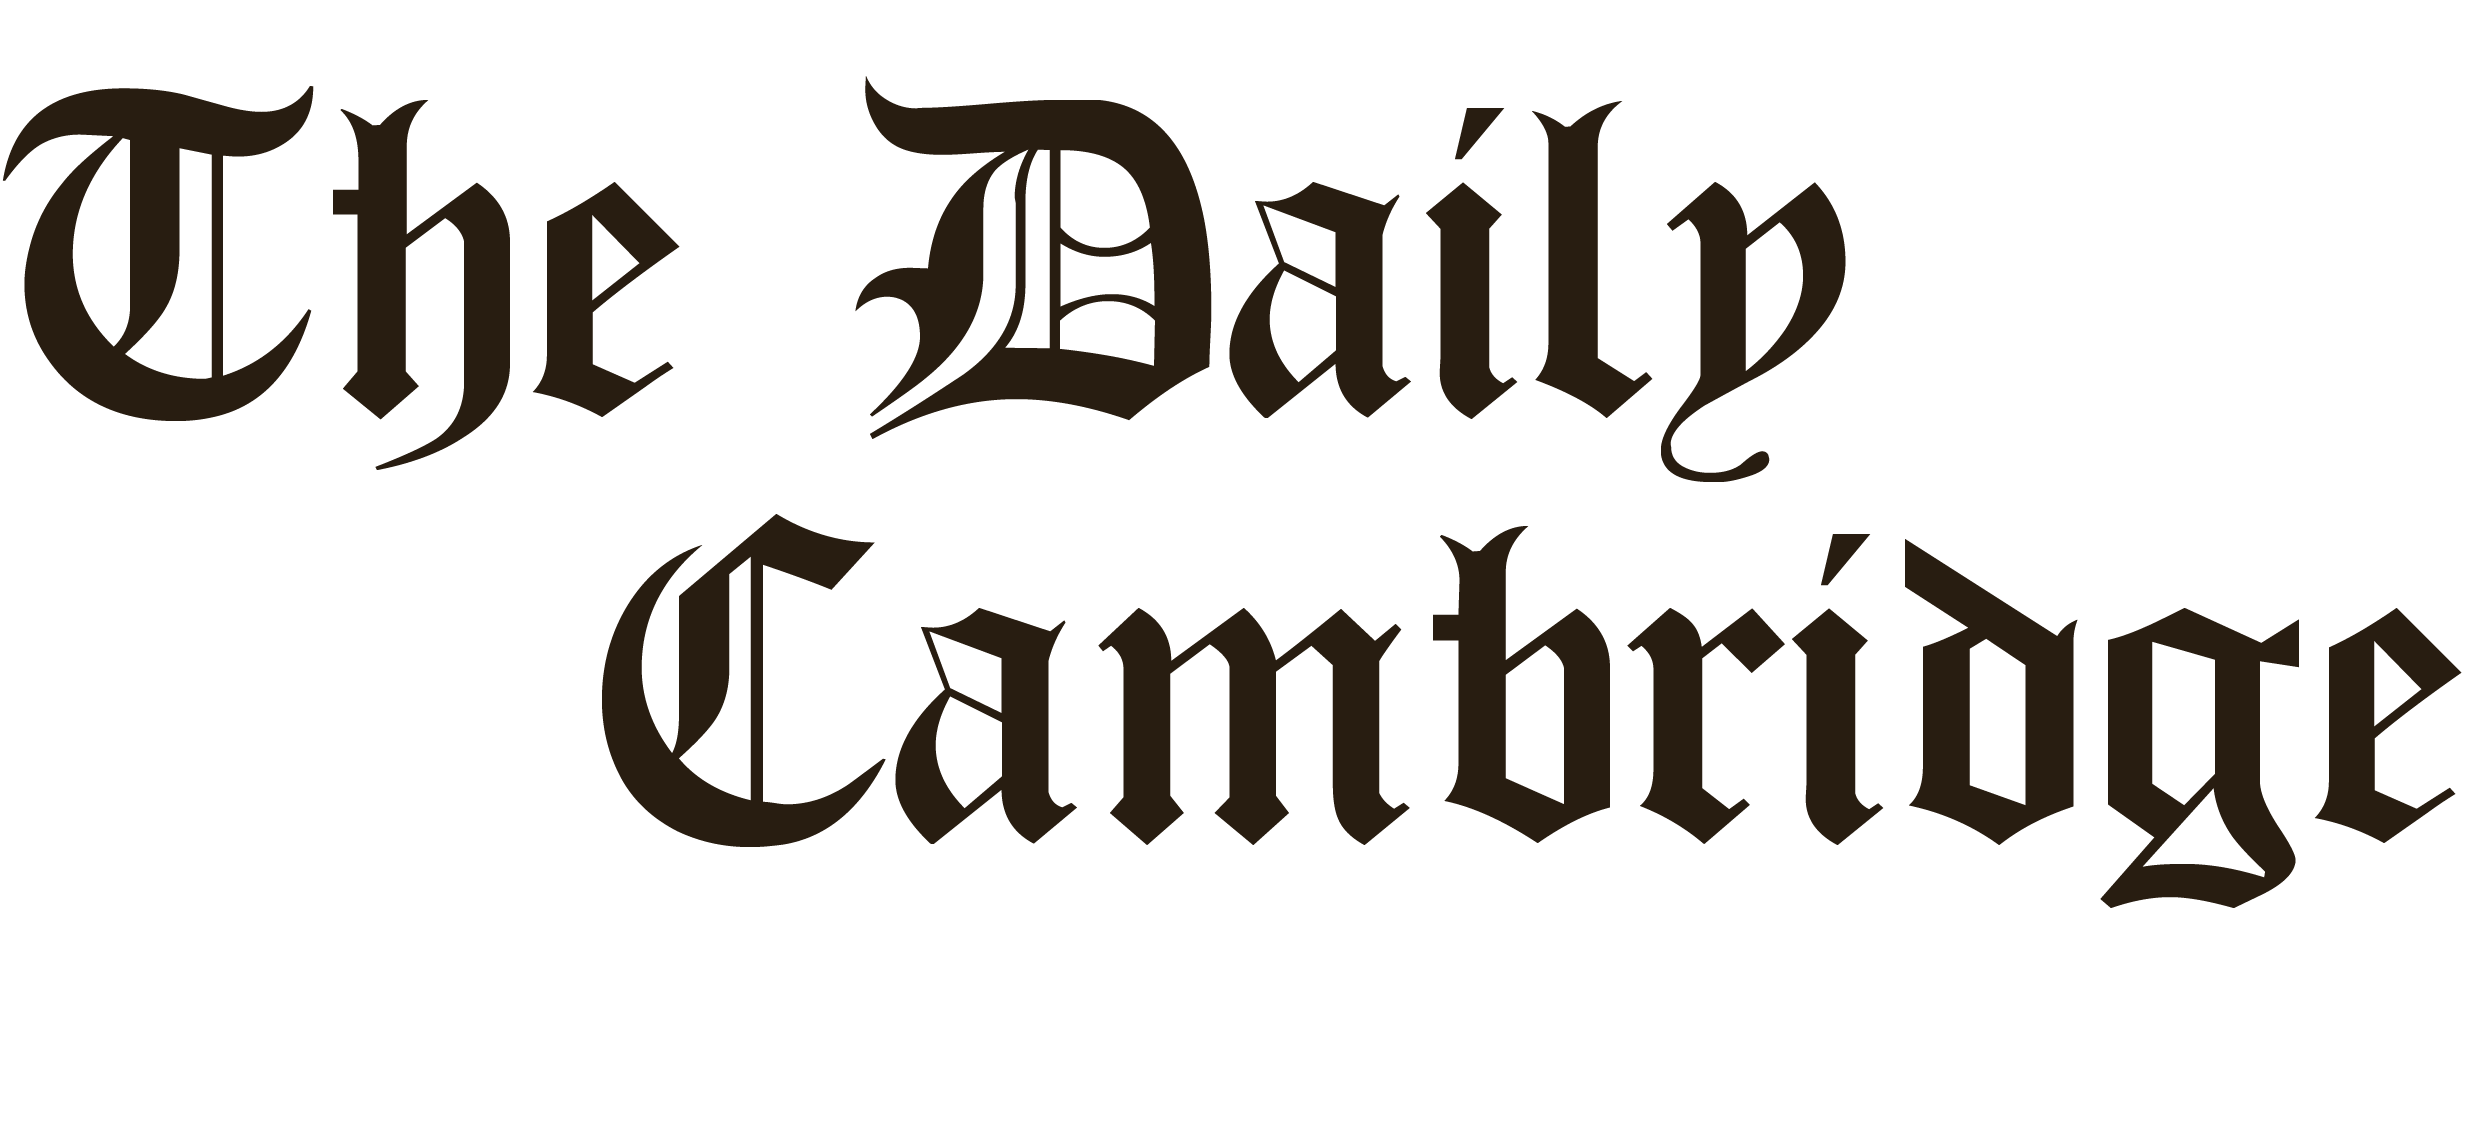 Daily Cambridge